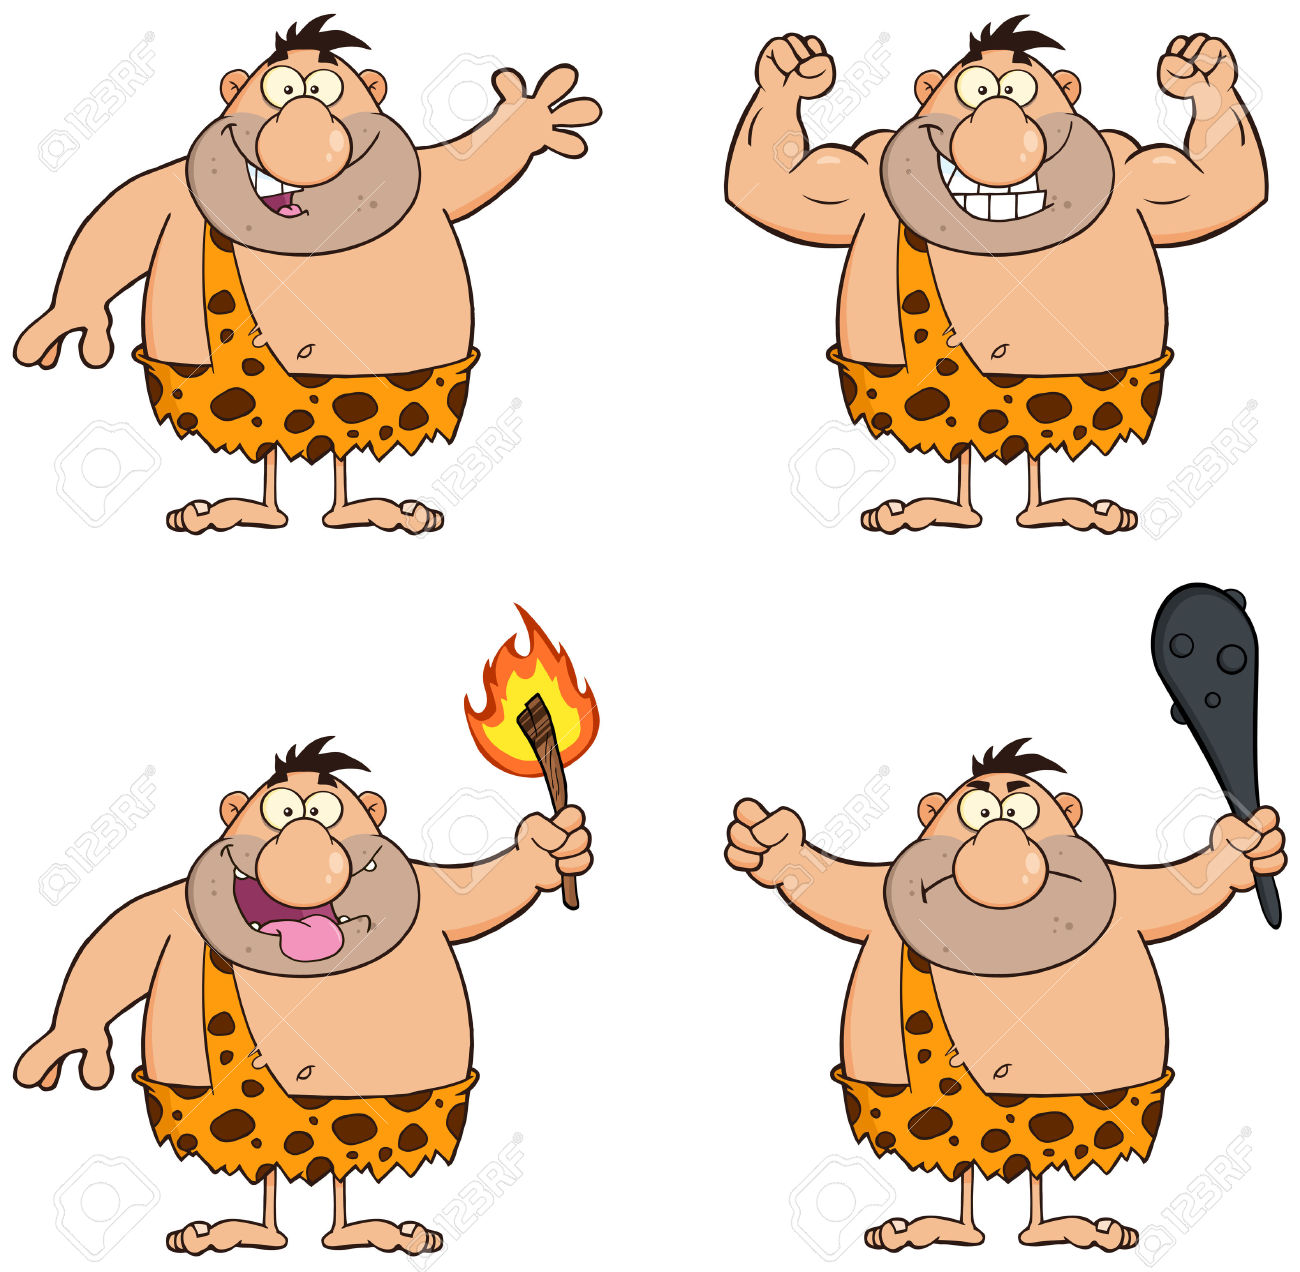 Caveman clipart happy. Character pencil and in